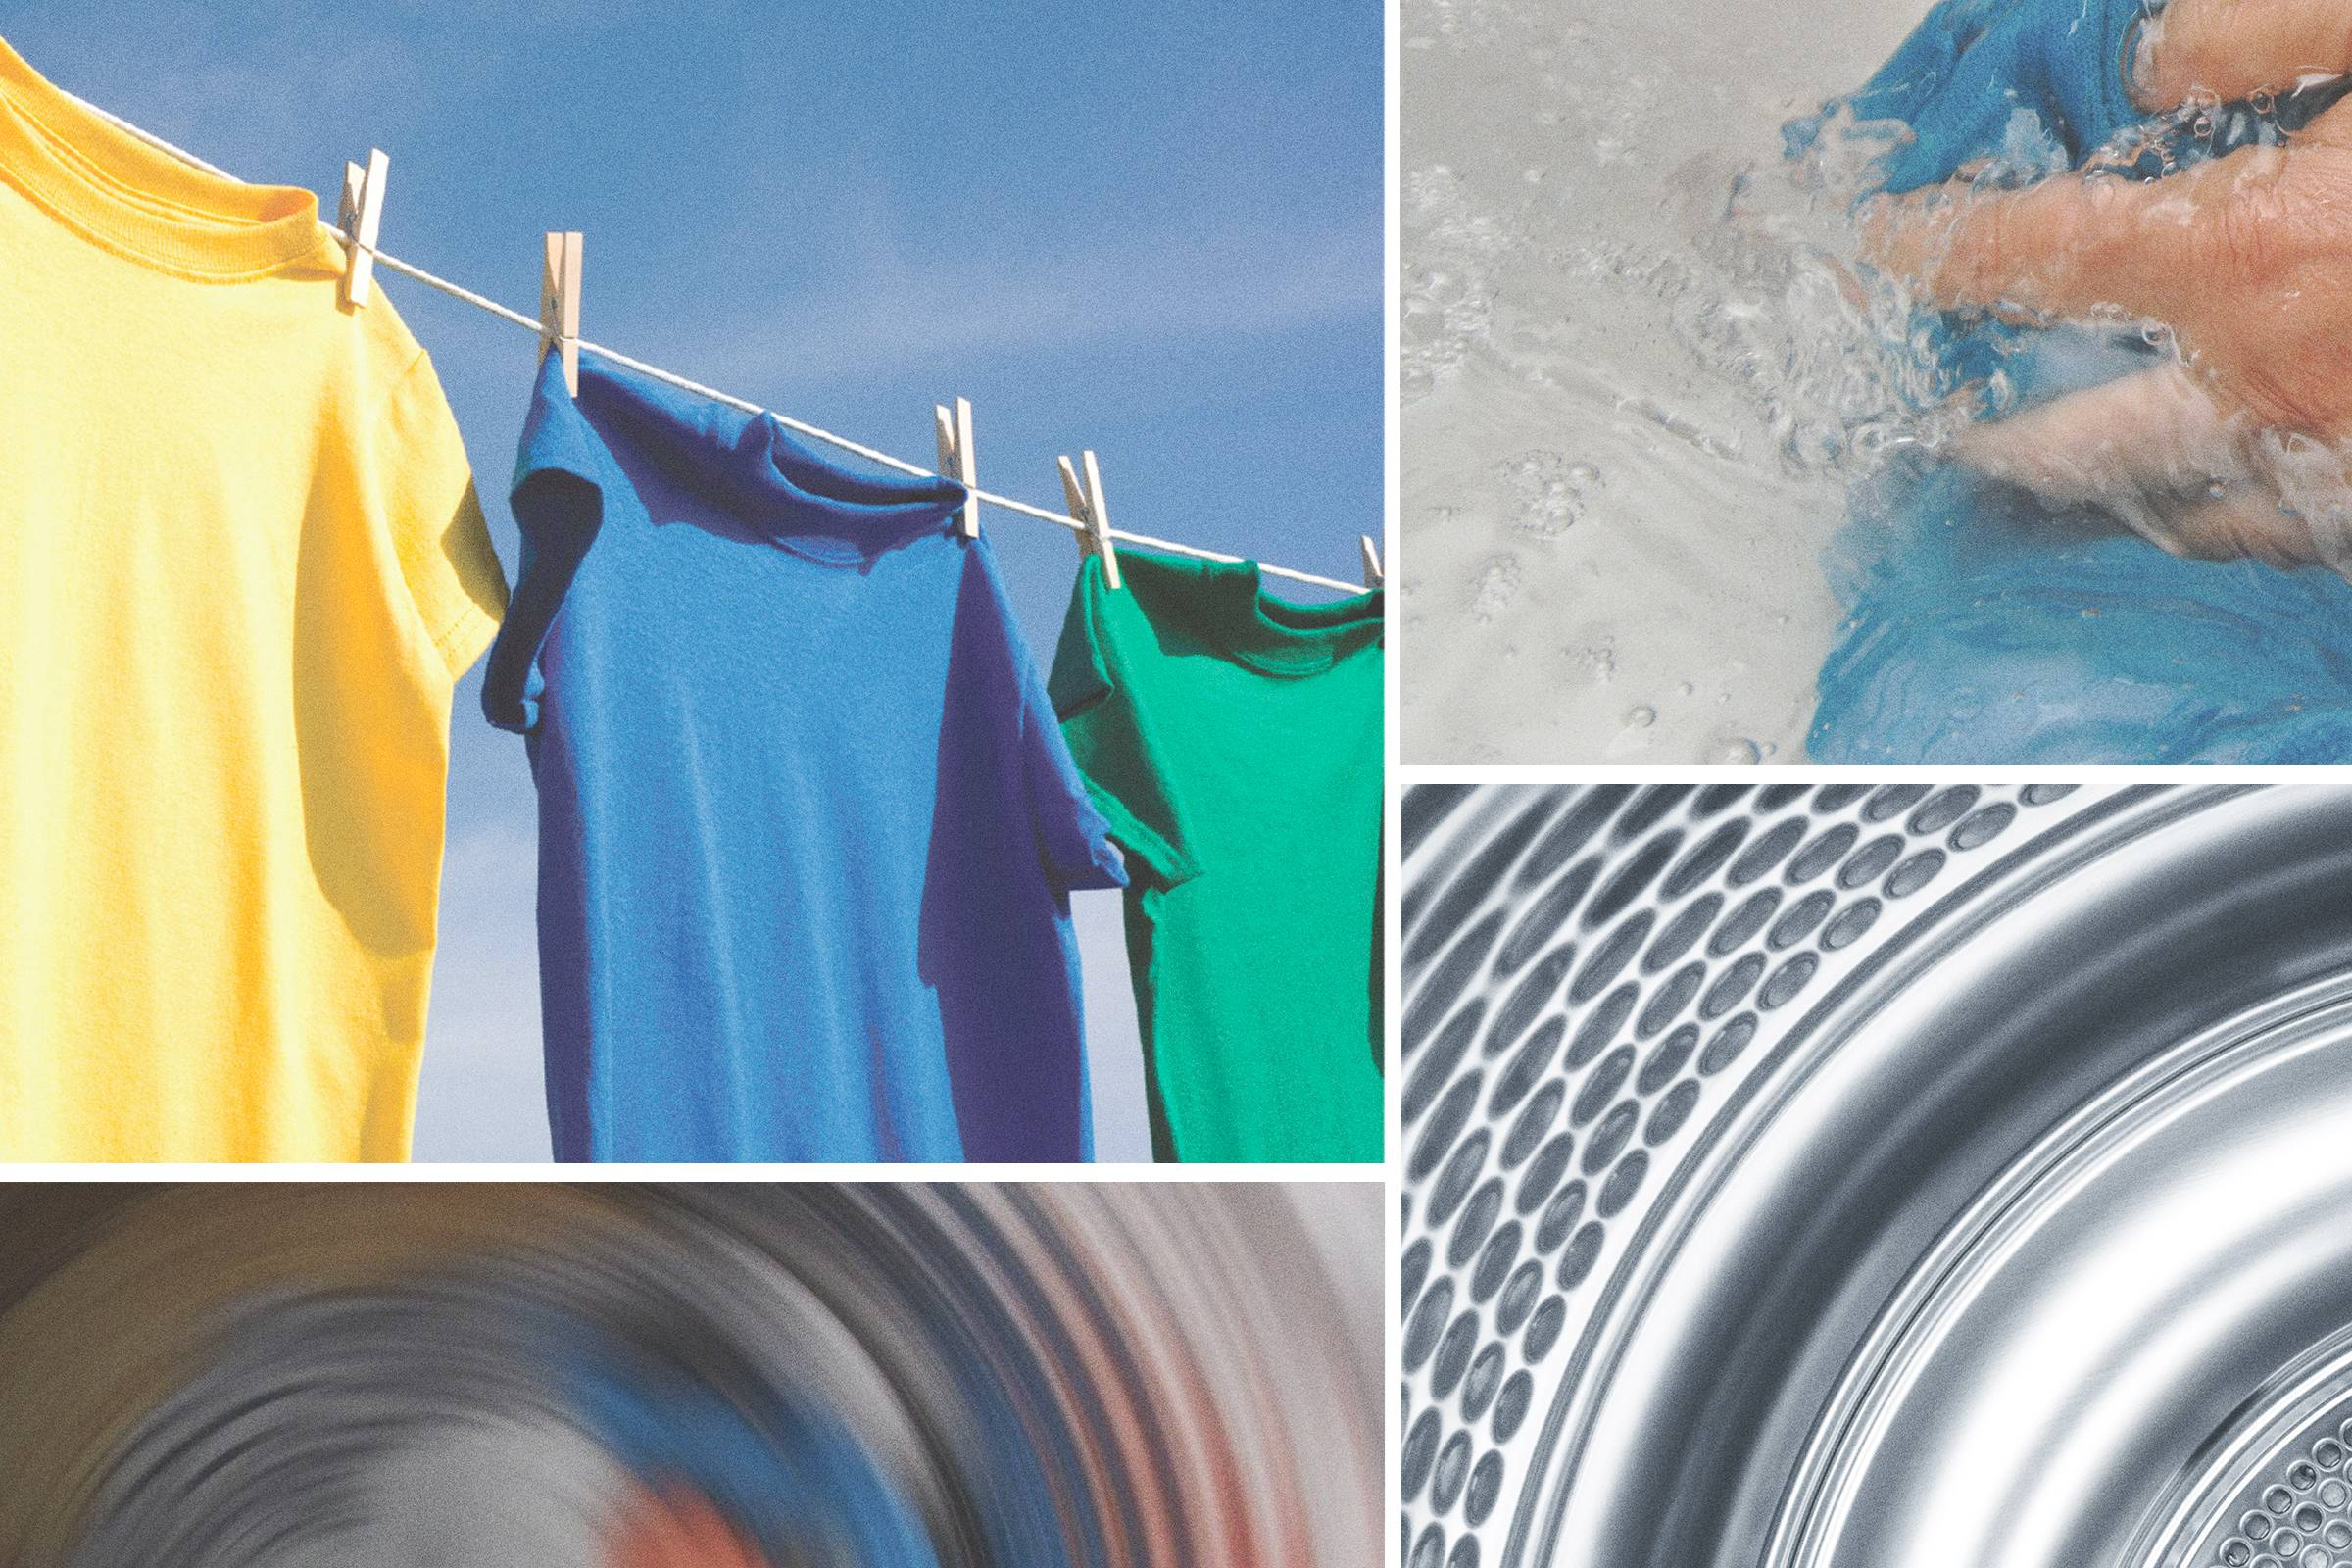 How to Disinfect and Launder Clothing